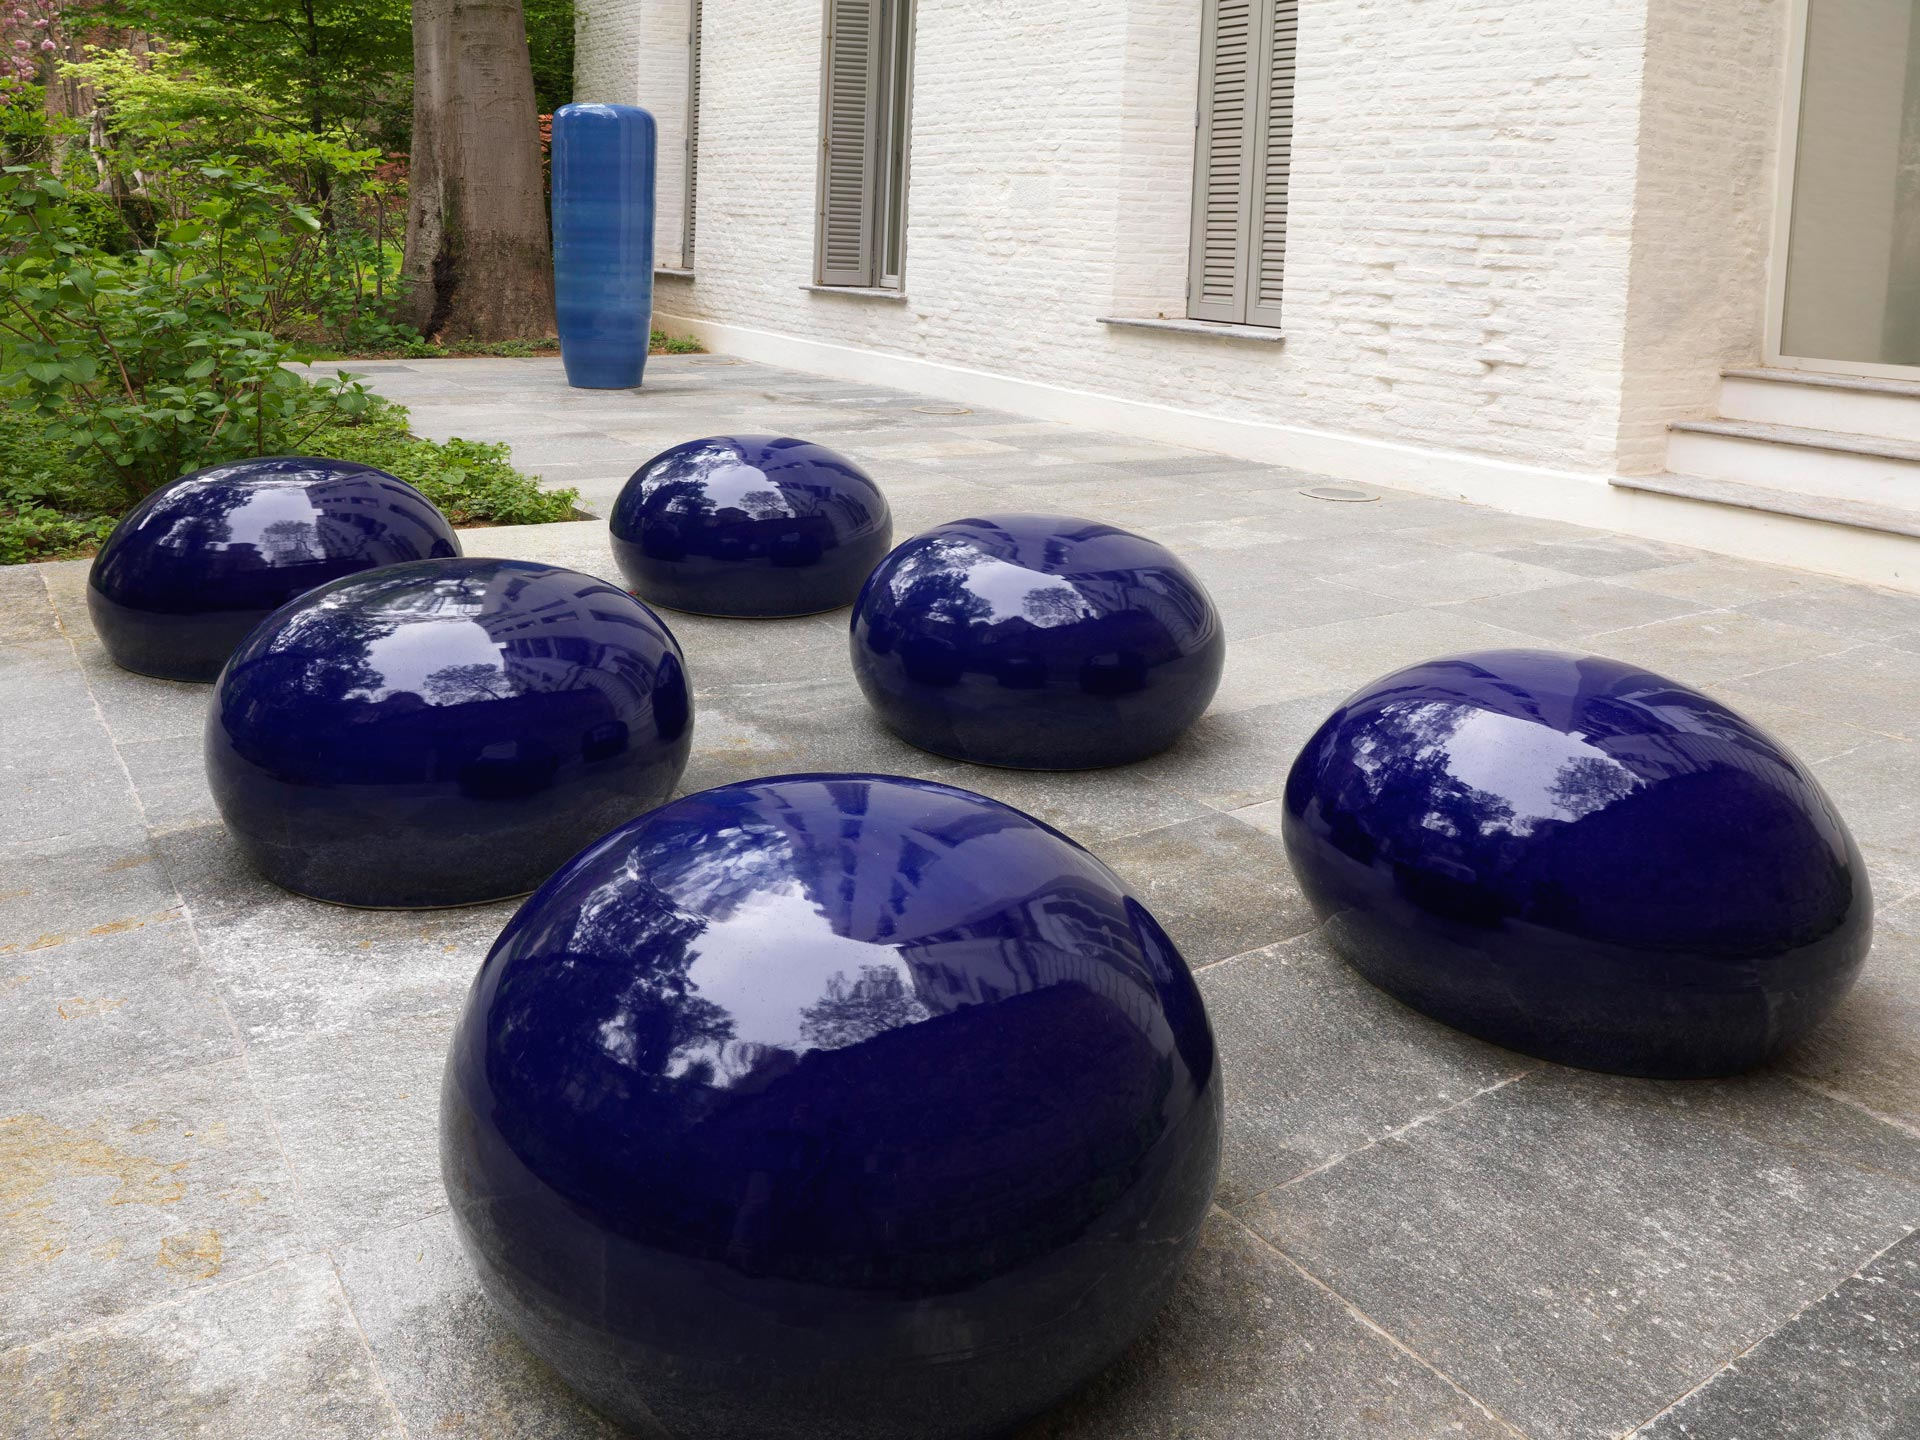 5-AI-WEIWEI-Bubble-2008-porcelain.-Courtesy-the-artist-and-Lisson-Gallery_web